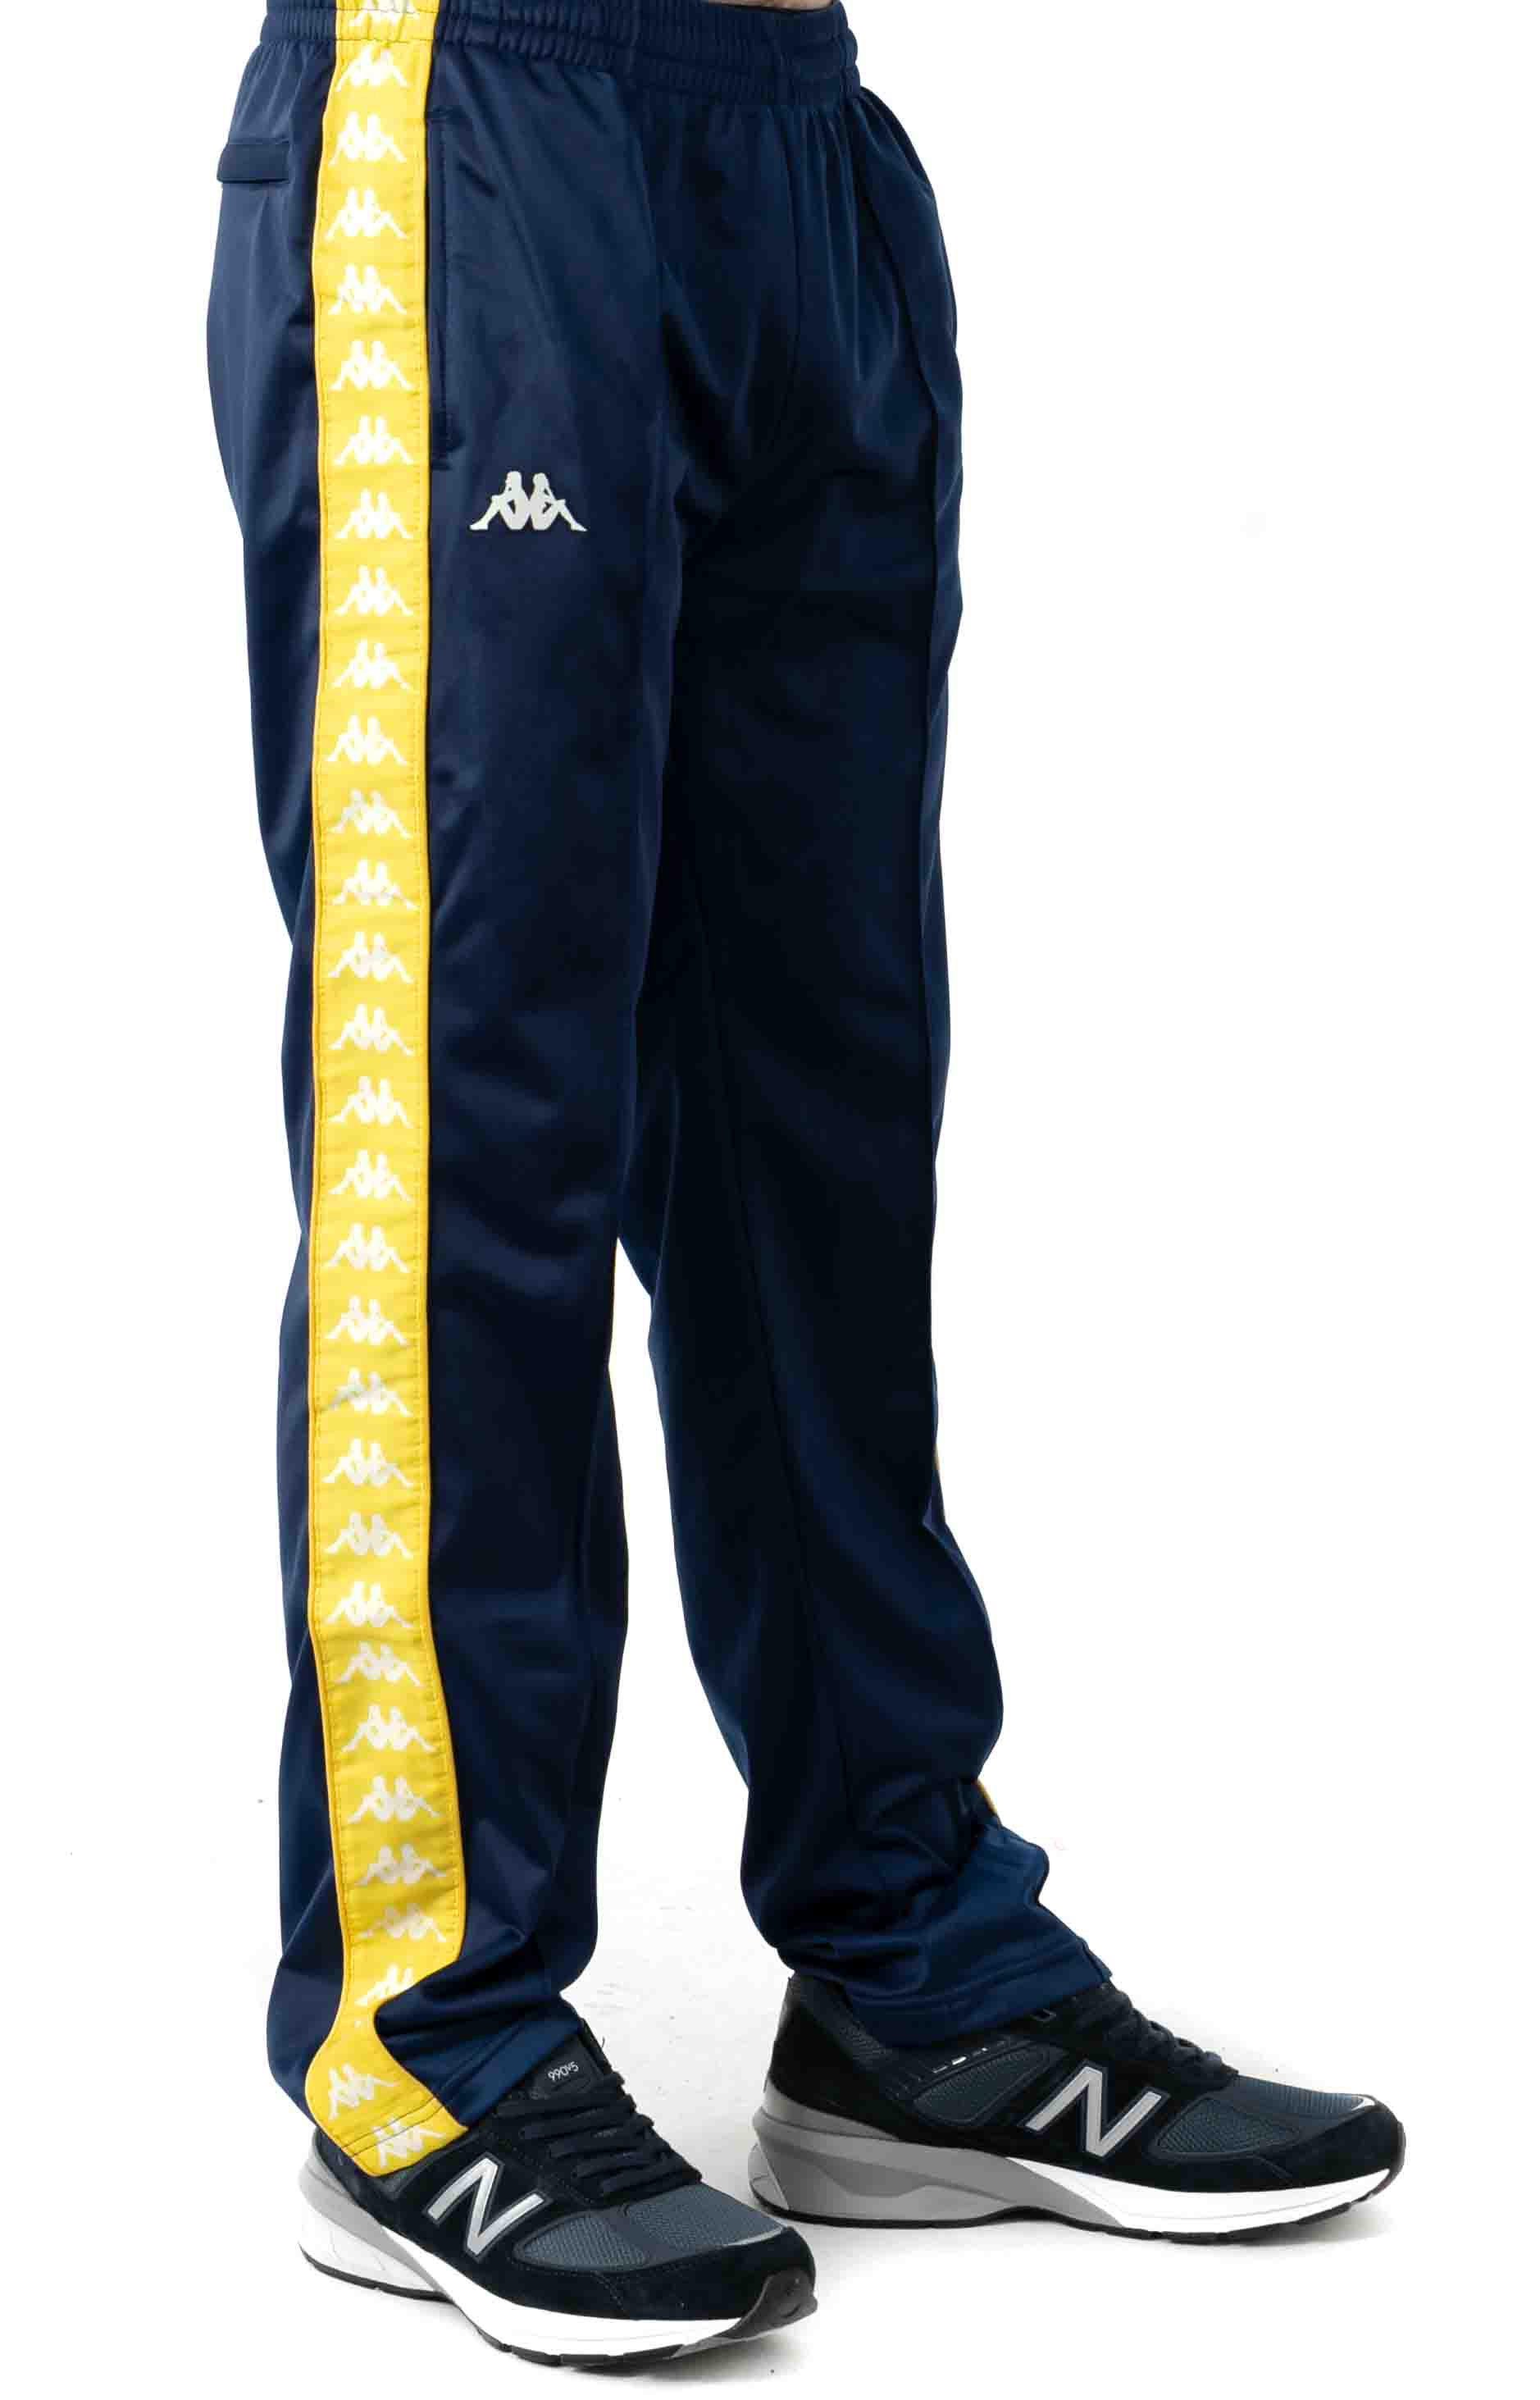 222 Banda Astoriazz Trackpant - Blue Mid/Yellow